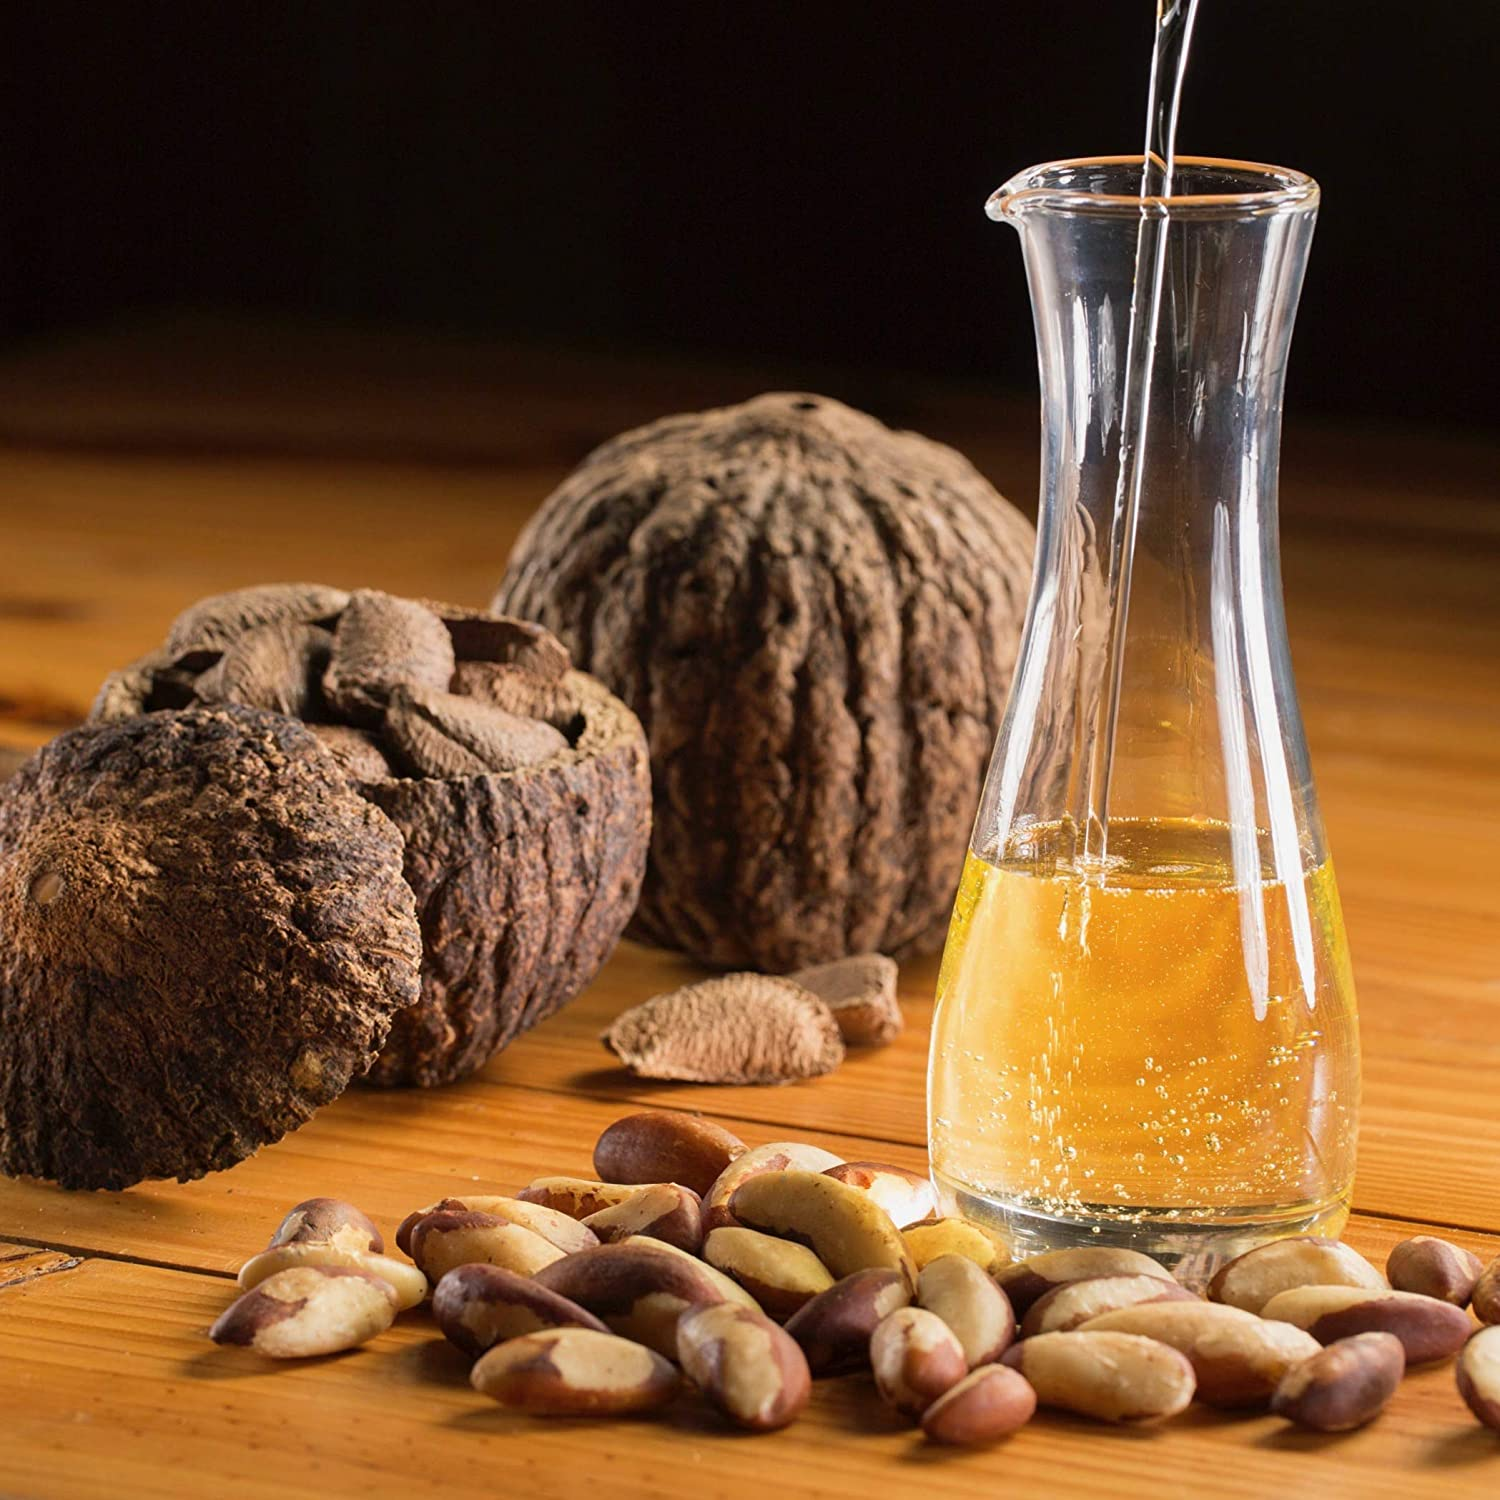 35oz (1kg) Organic Raw Brazil Nut Oil. Unrefined, Cold-pressed, Wild-Harvested, Sustainably Sourced. Food Grade. Natural super emollient.